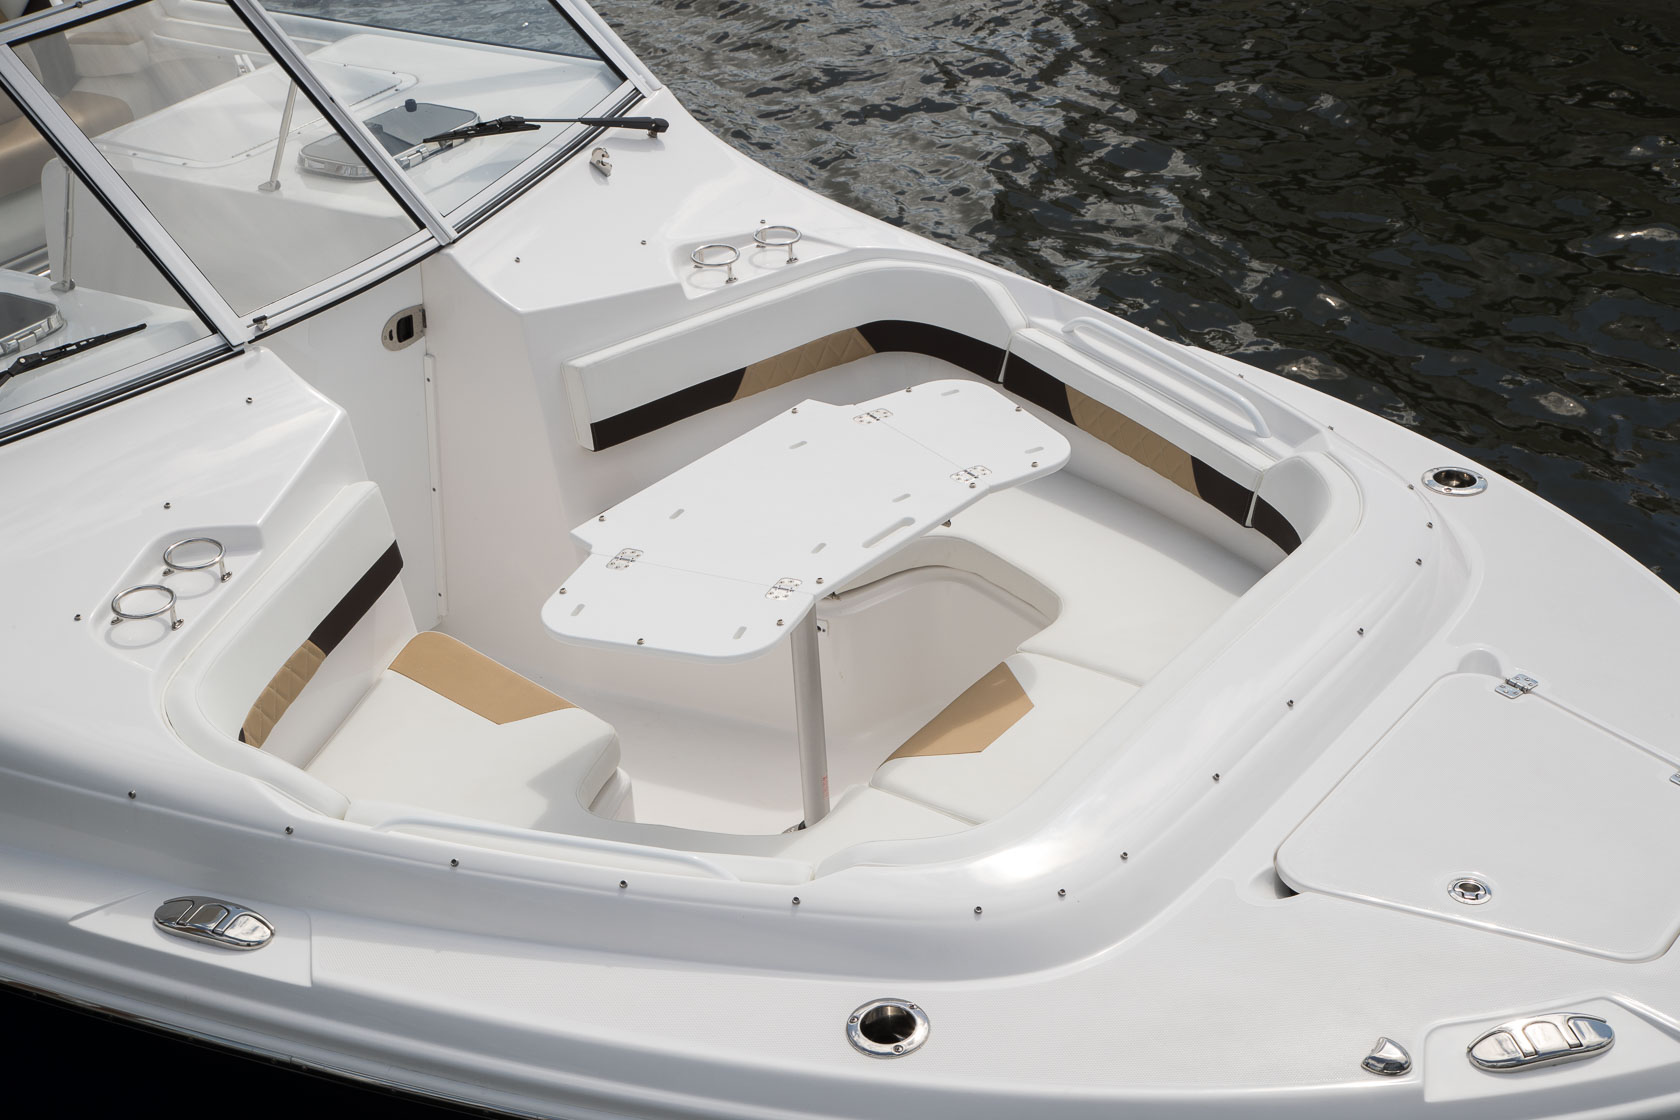 Image 1546: dual console boats bow seating